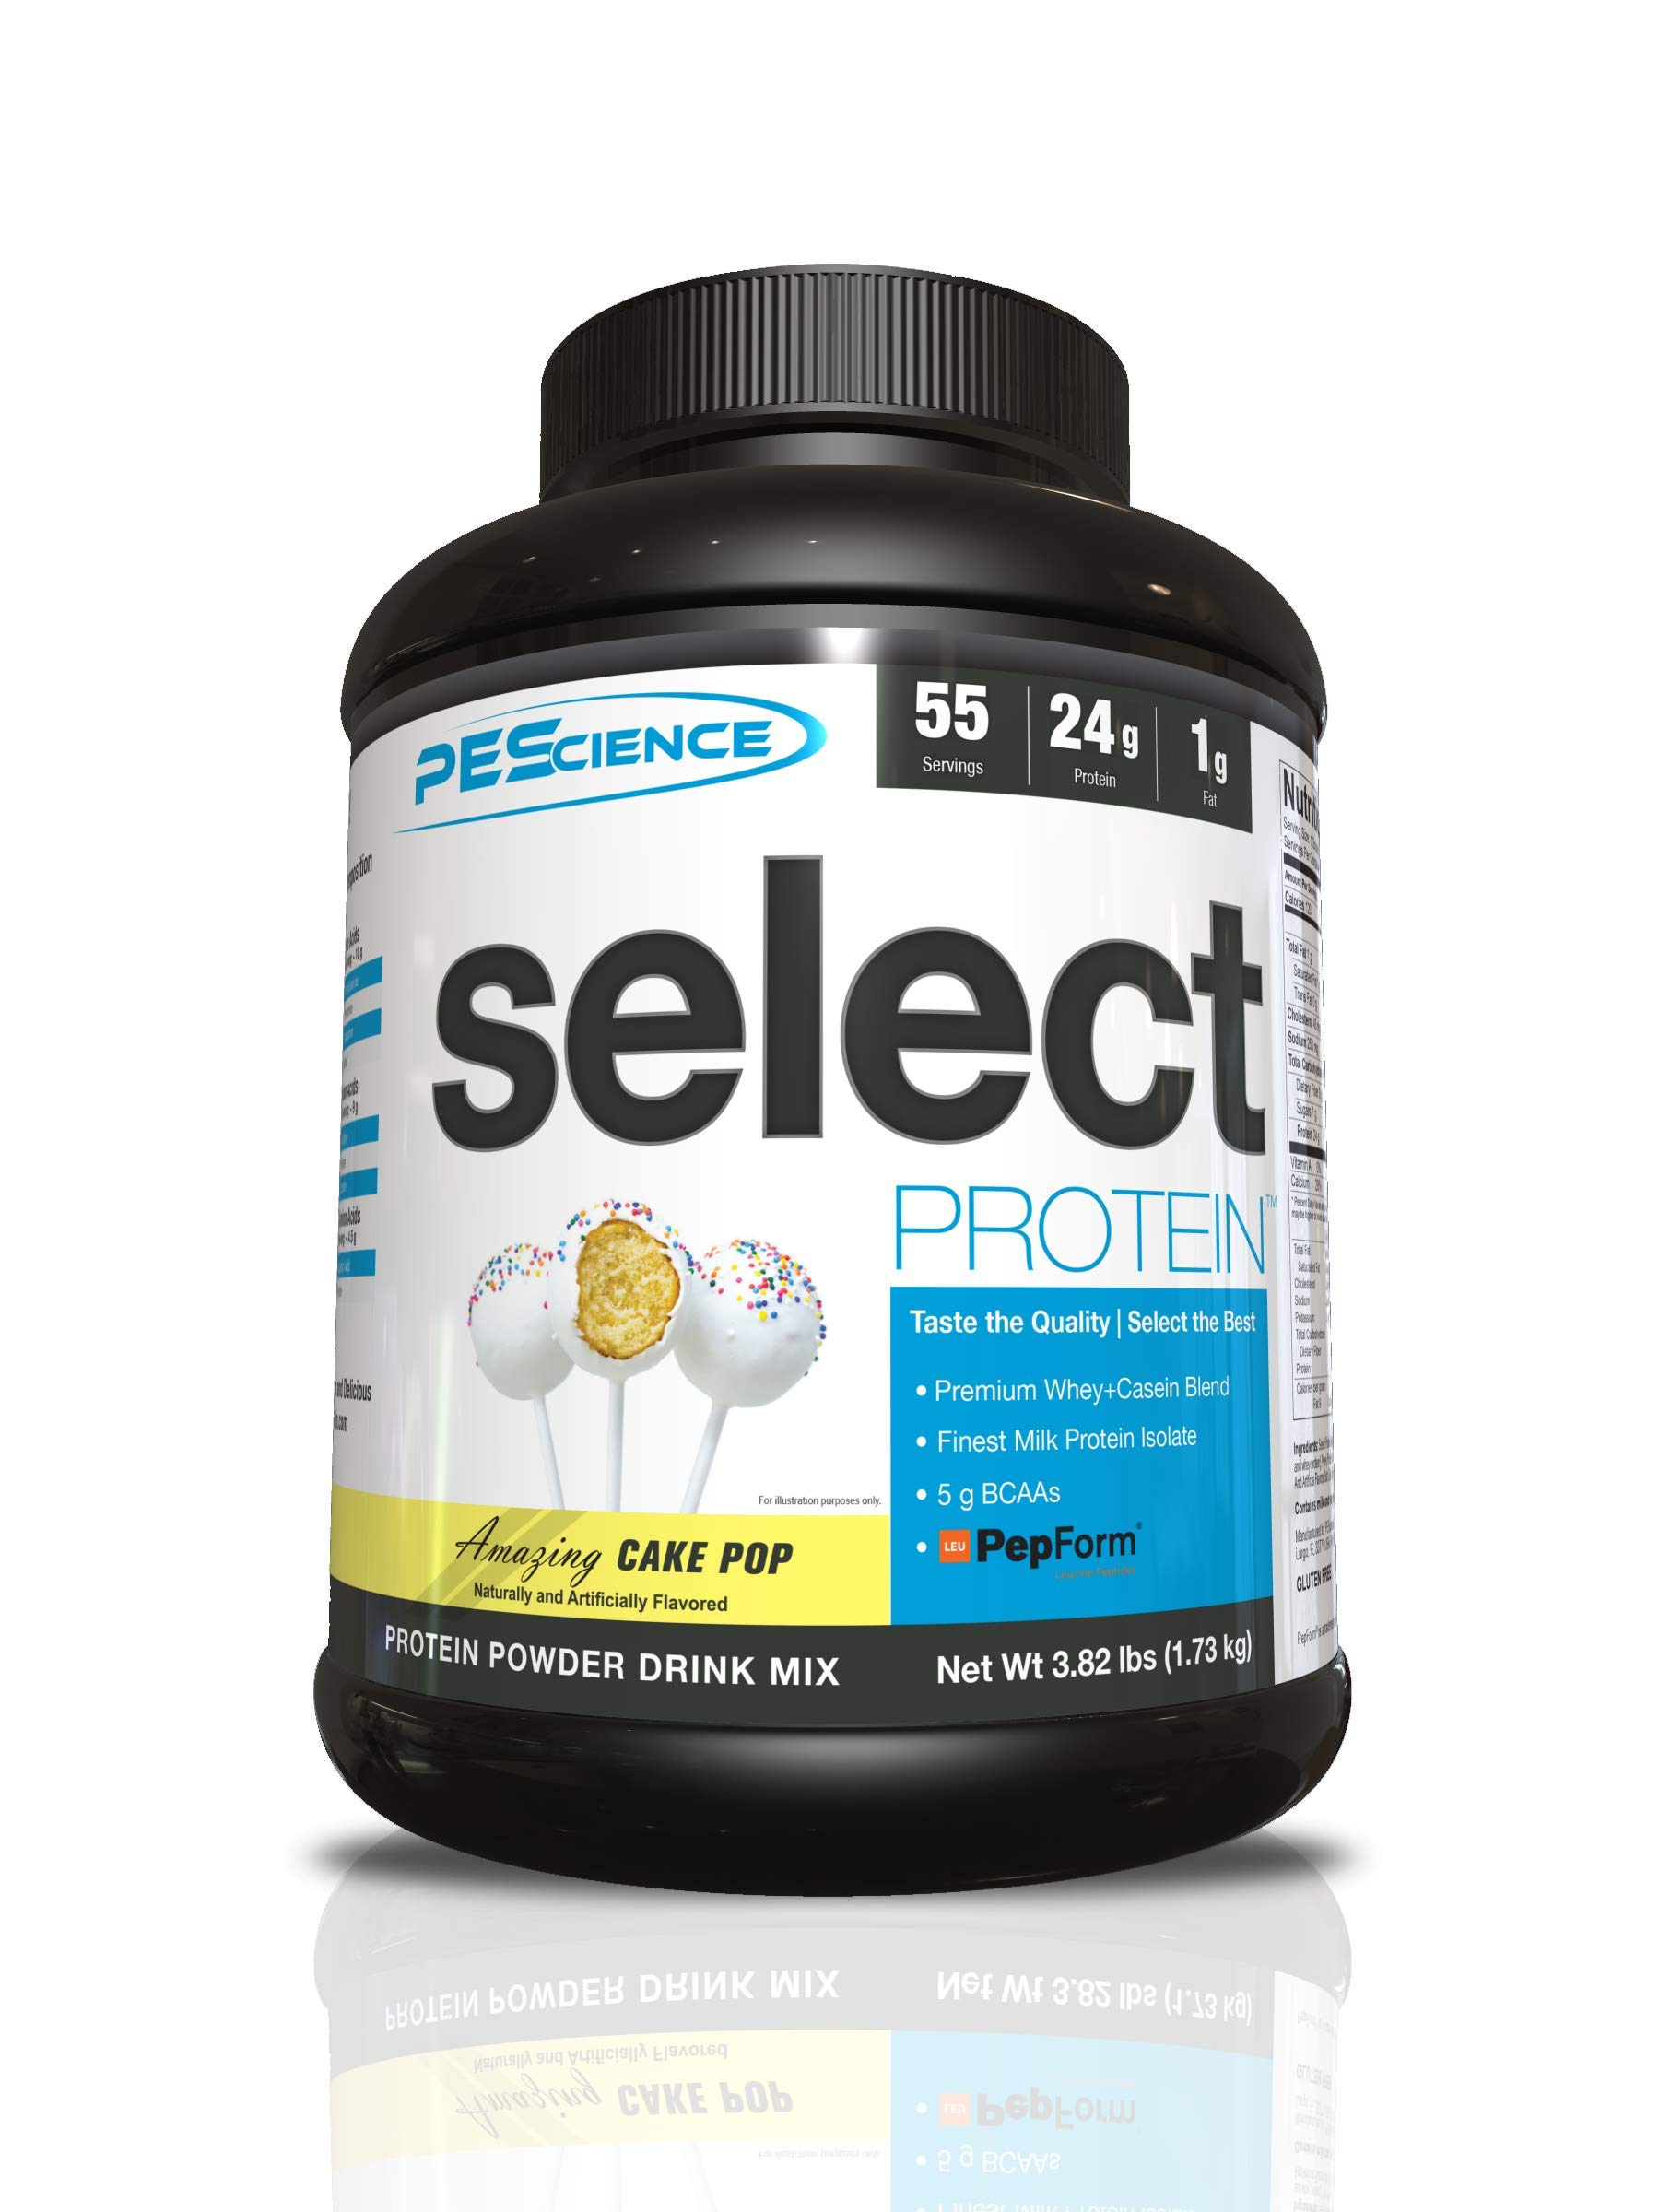 PEScience Select Low Carb Protein Powder, Cake Pop, 55 Serving, Keto Friendly and Gluten Free